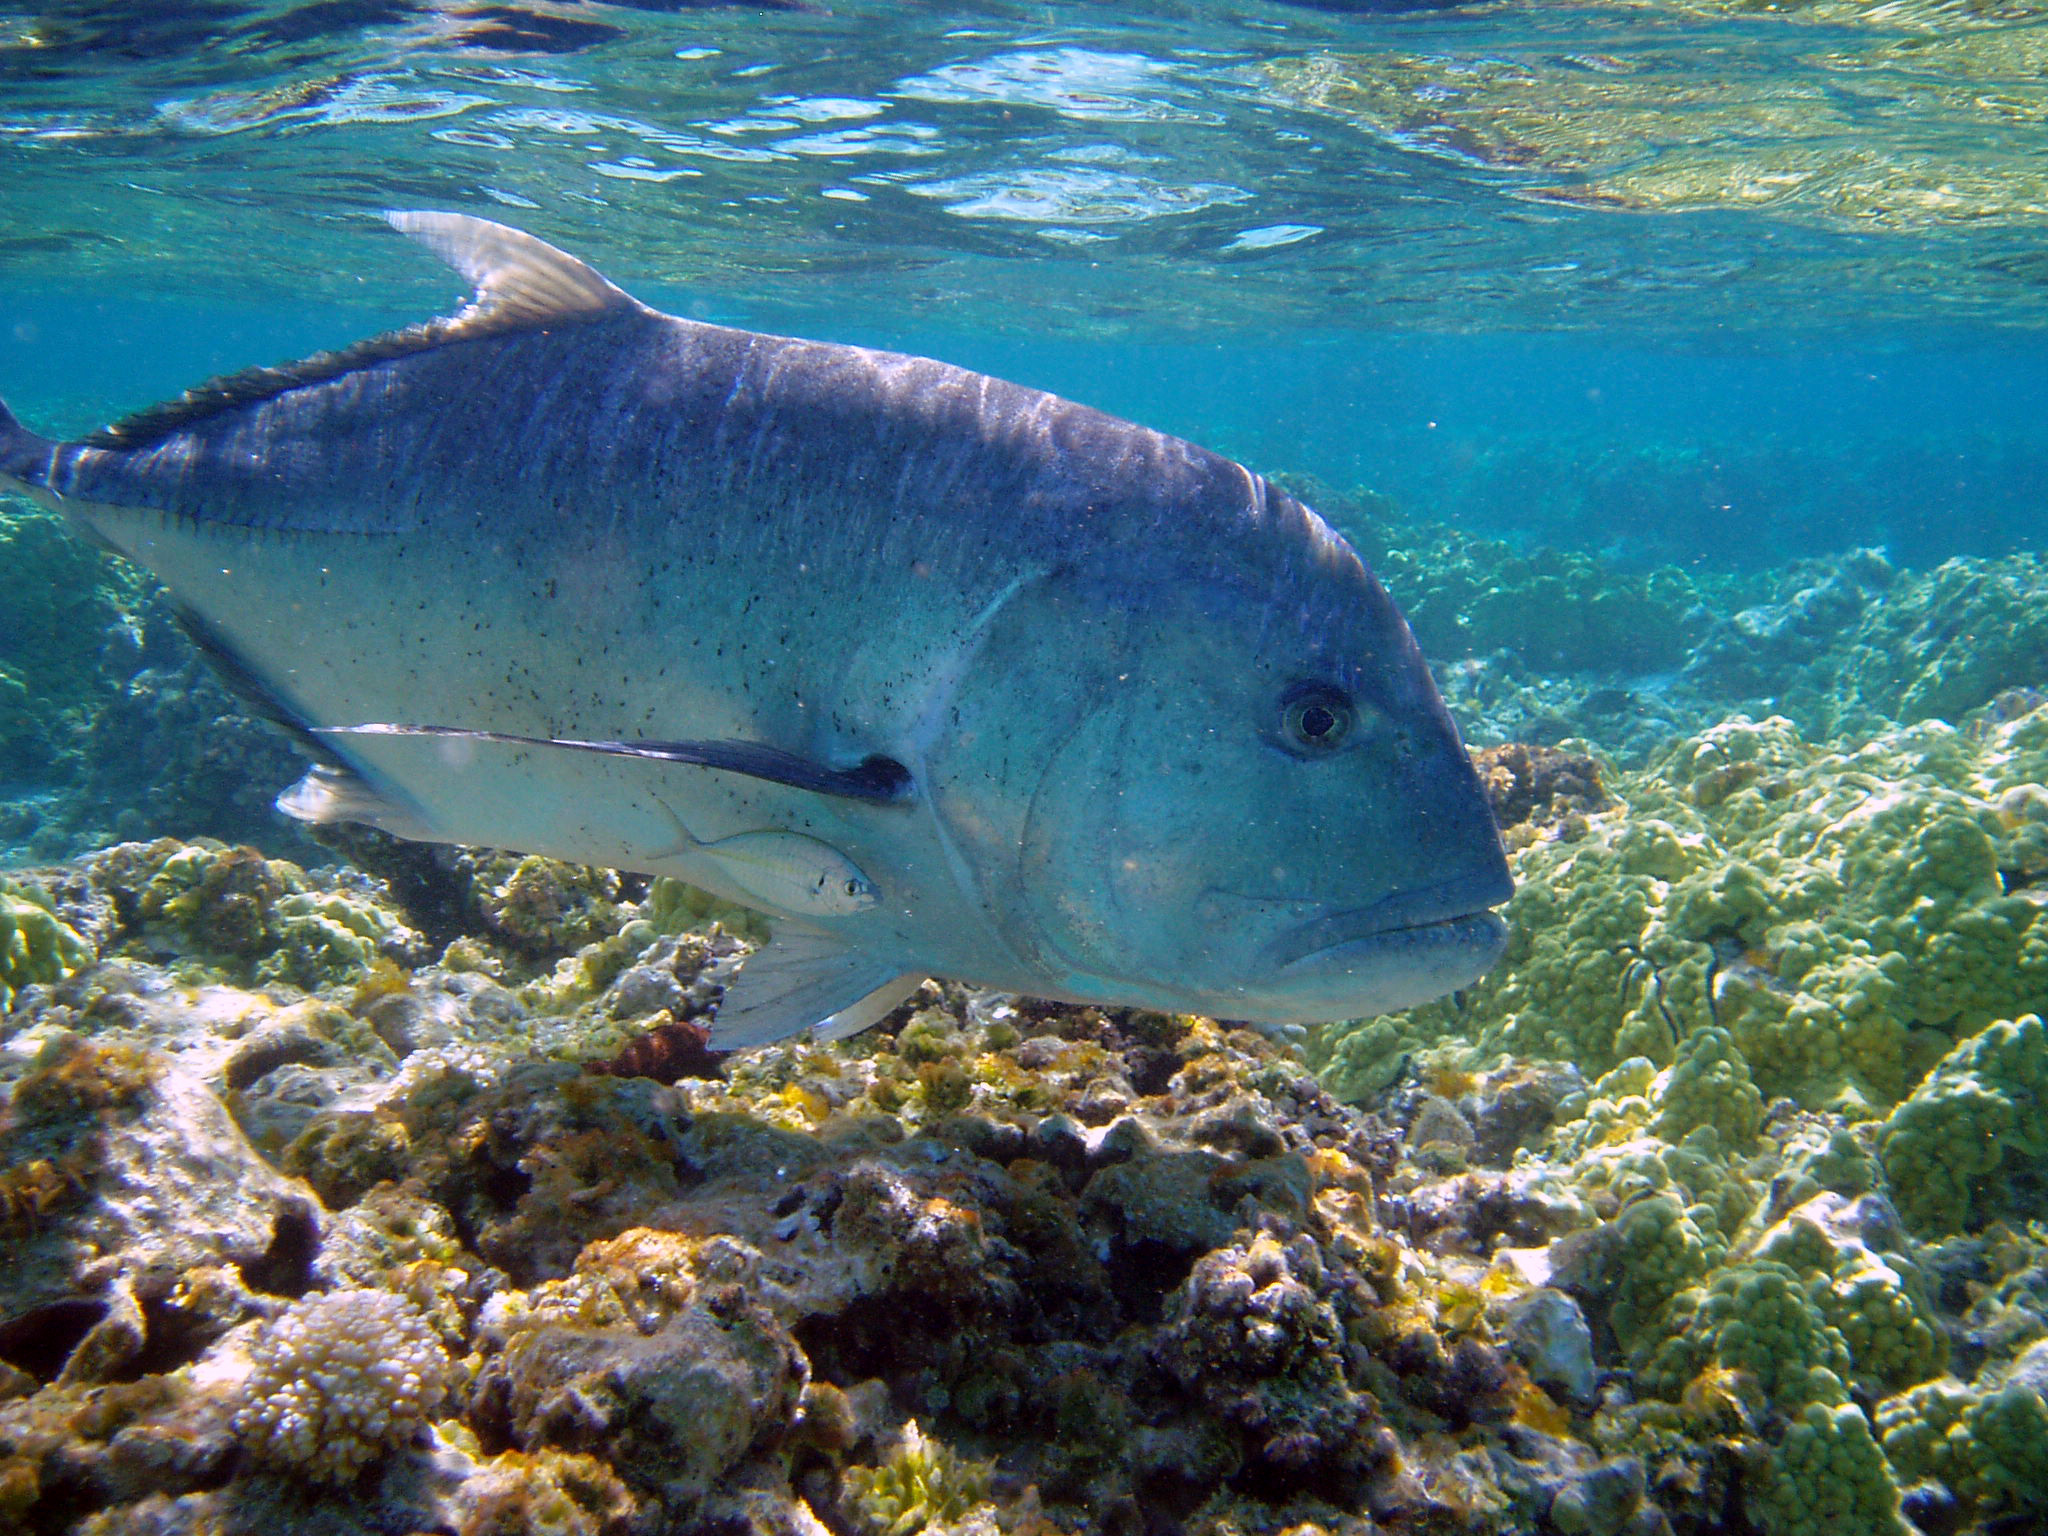 Res: 2048x1536, Giant trevally